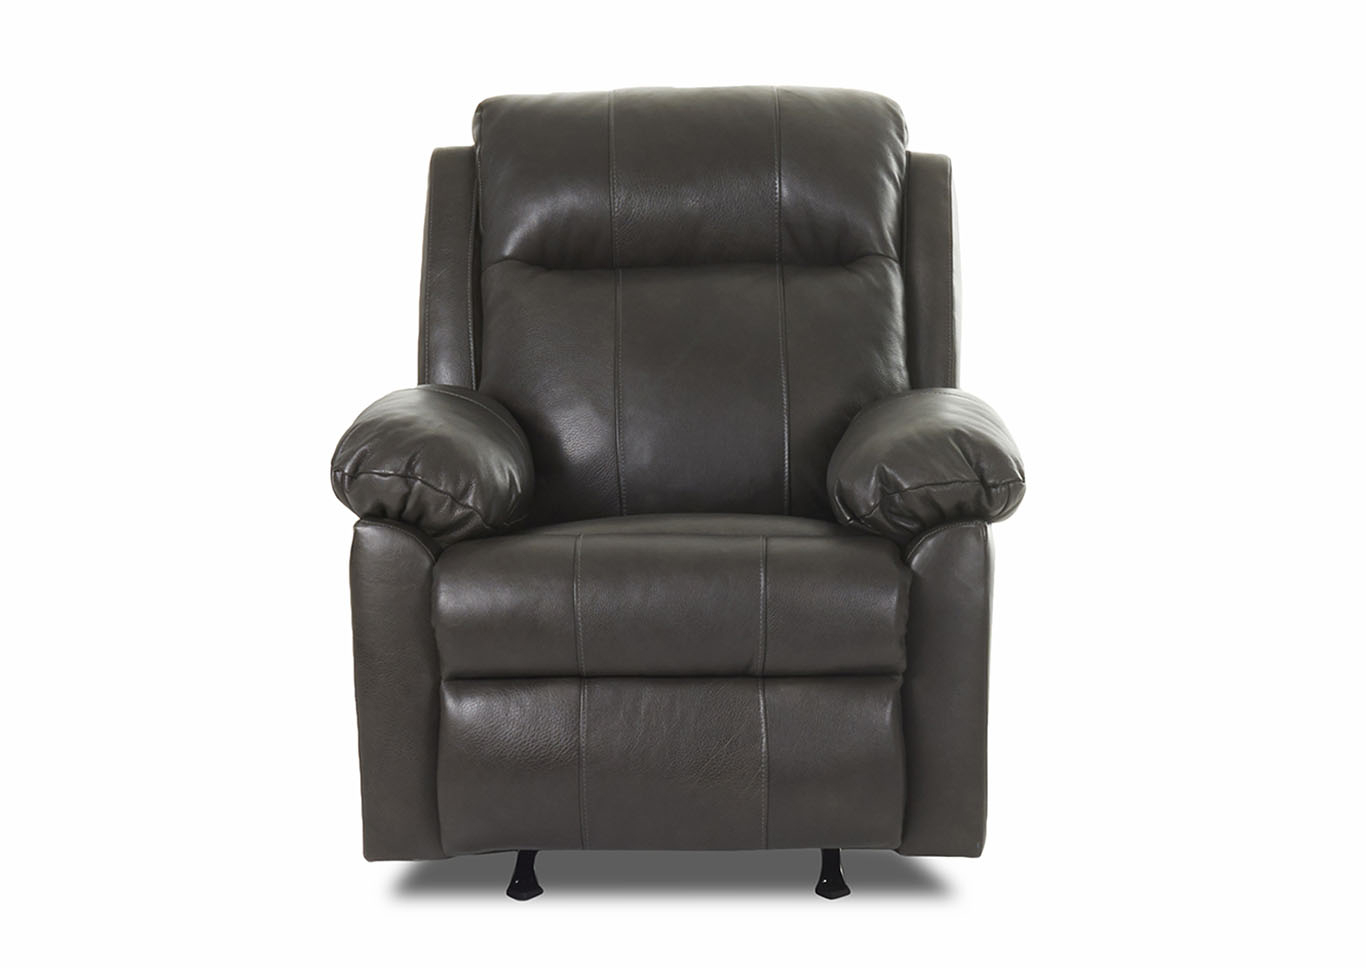 Weiss Furniture Amari Reclining Rocking Leather & Vinyl Chair Pertaining To Amari Swivel Accent Chairs (View 18 of 20)